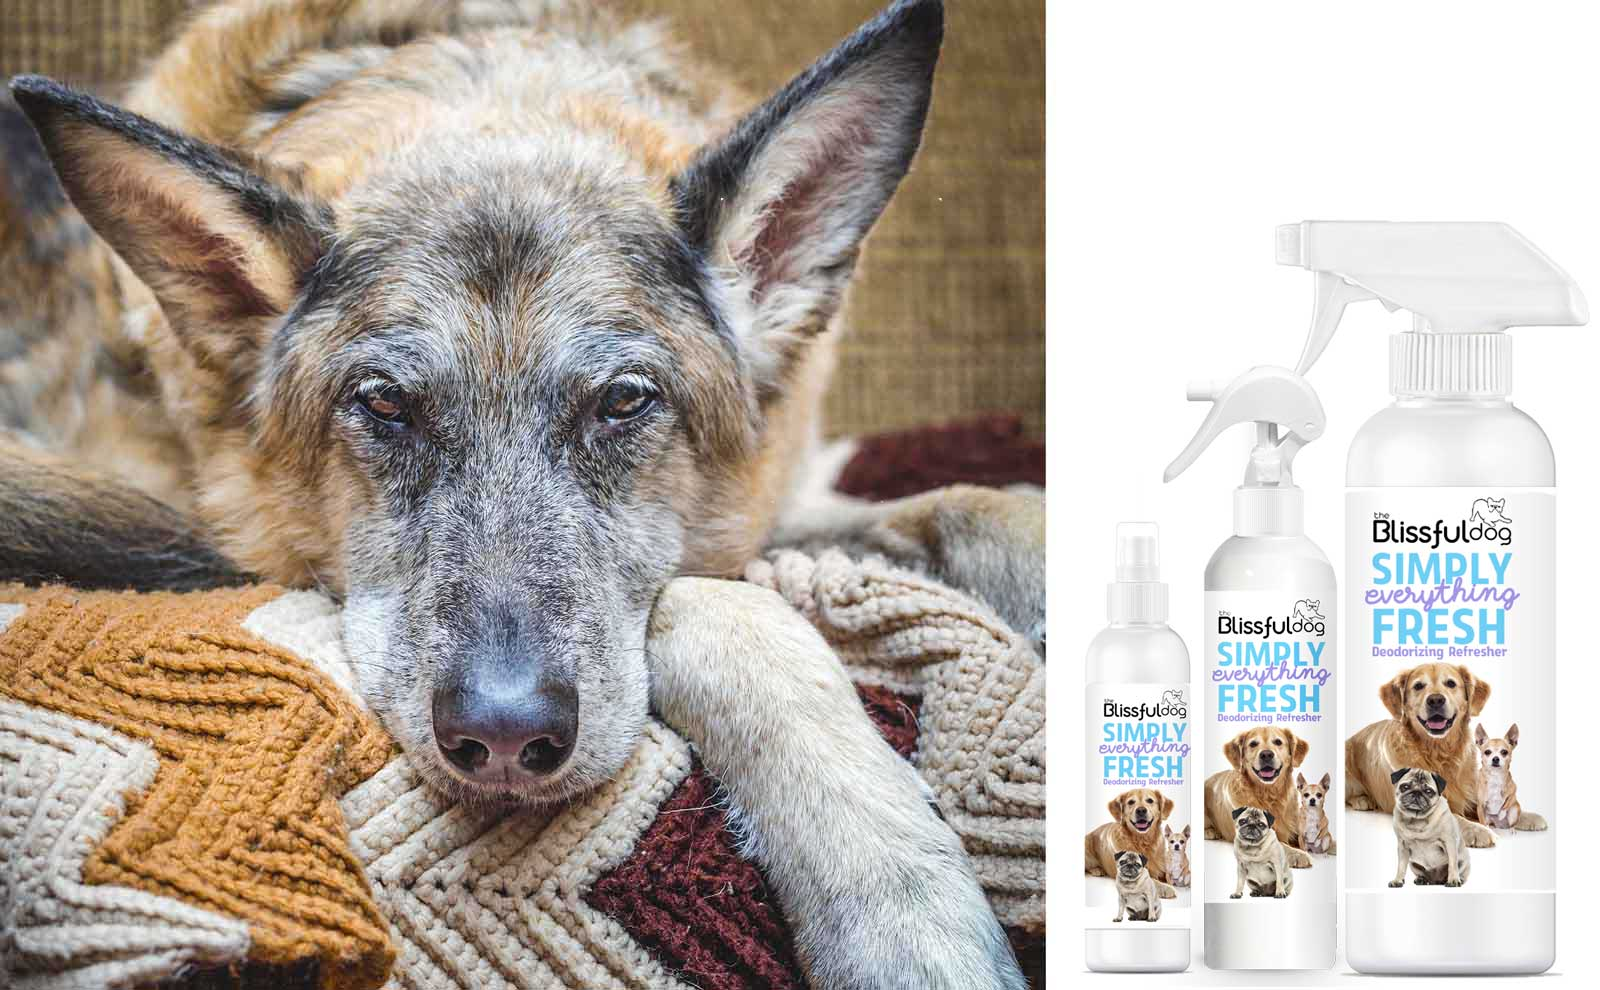 deodorizing spray for senior dogs